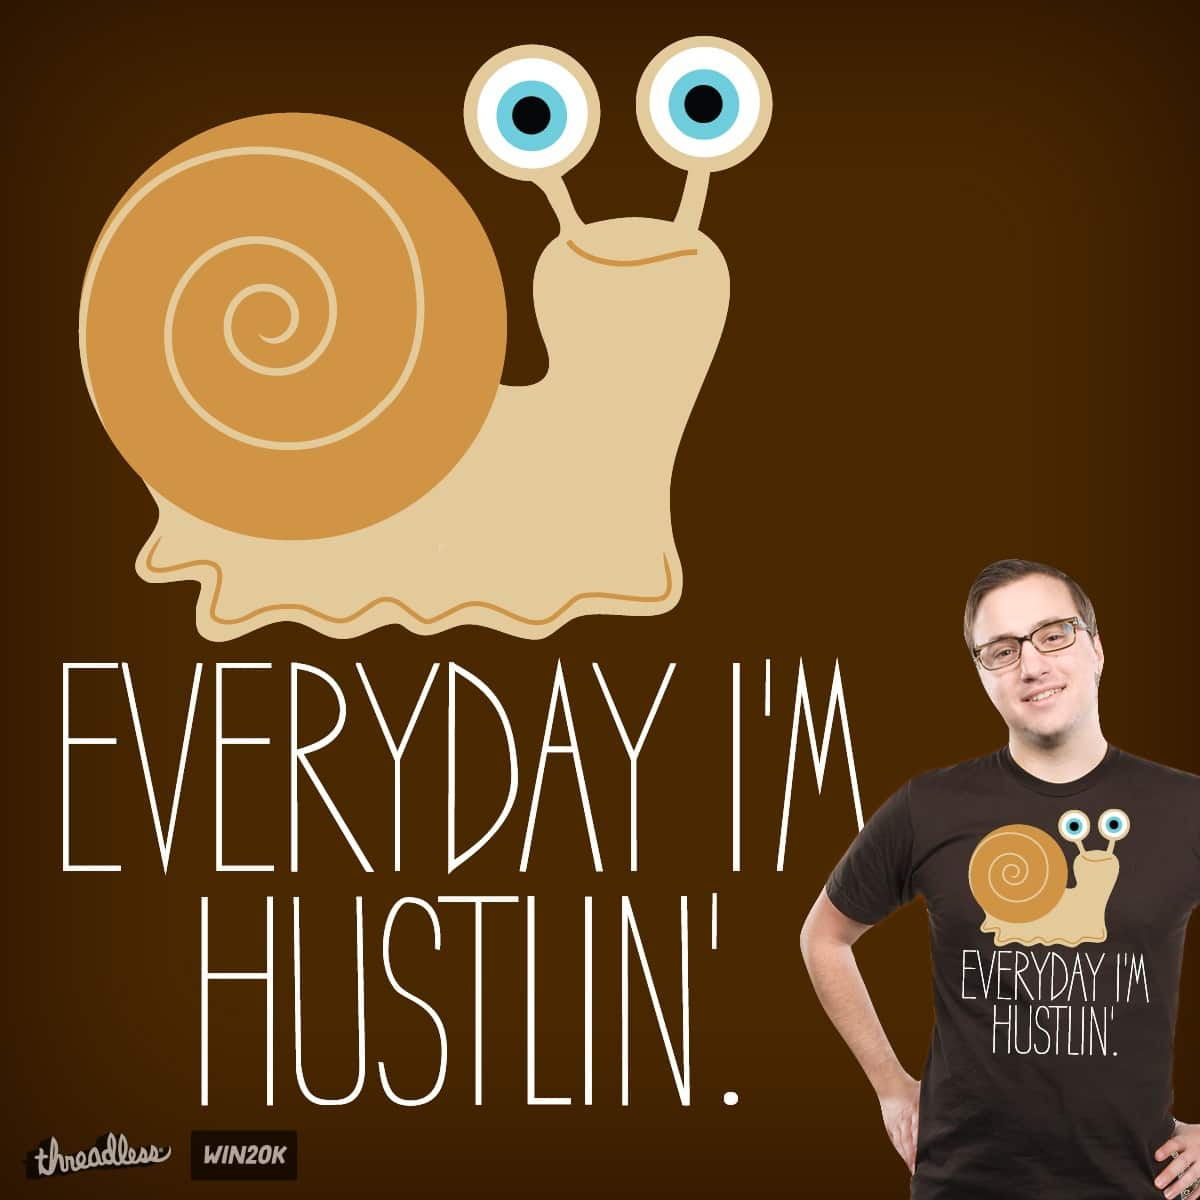 The Hustler by PolySciGuy on Threadless